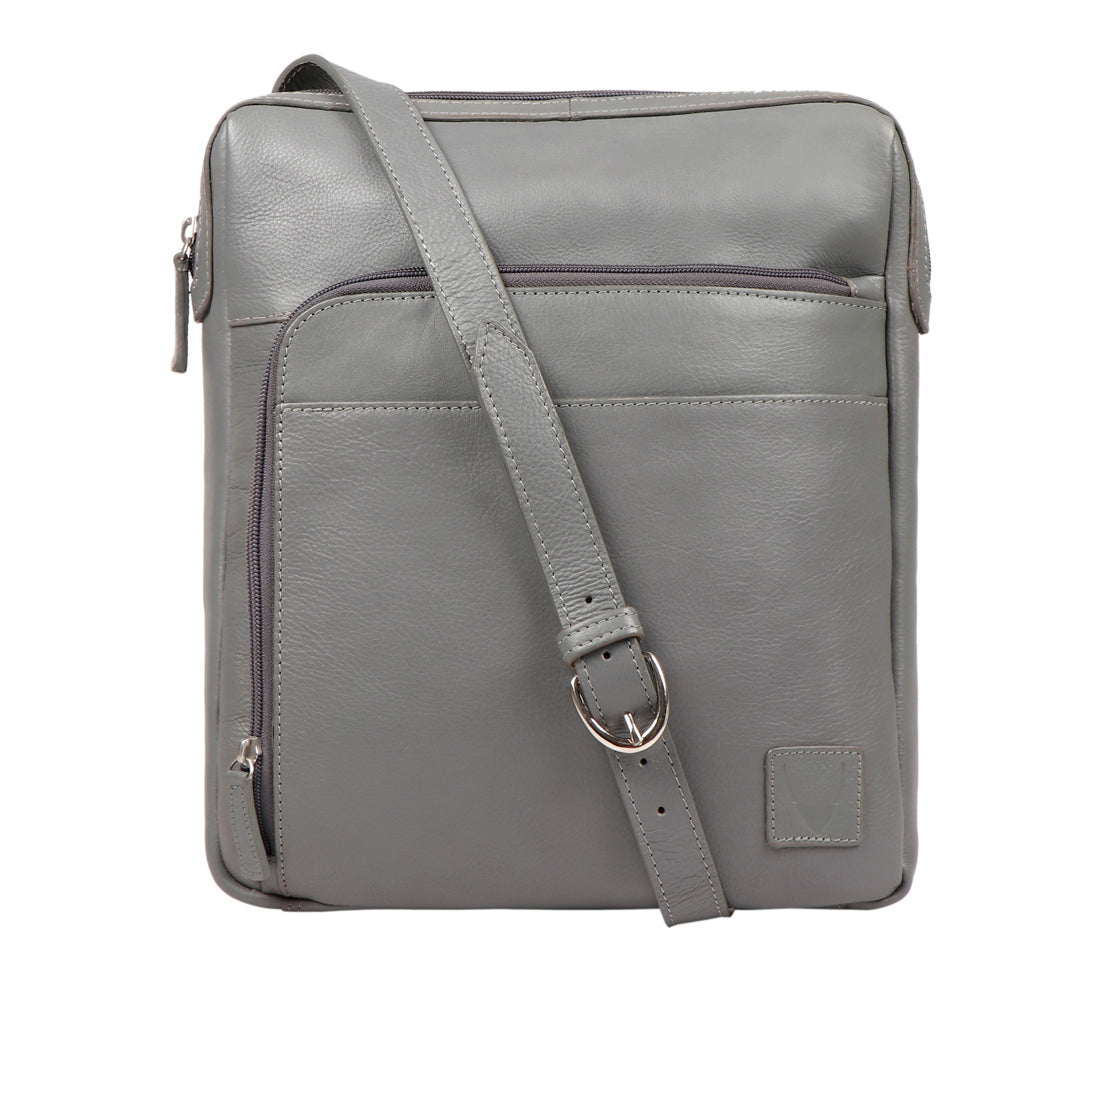 SLIDER 03 CROSSBODY